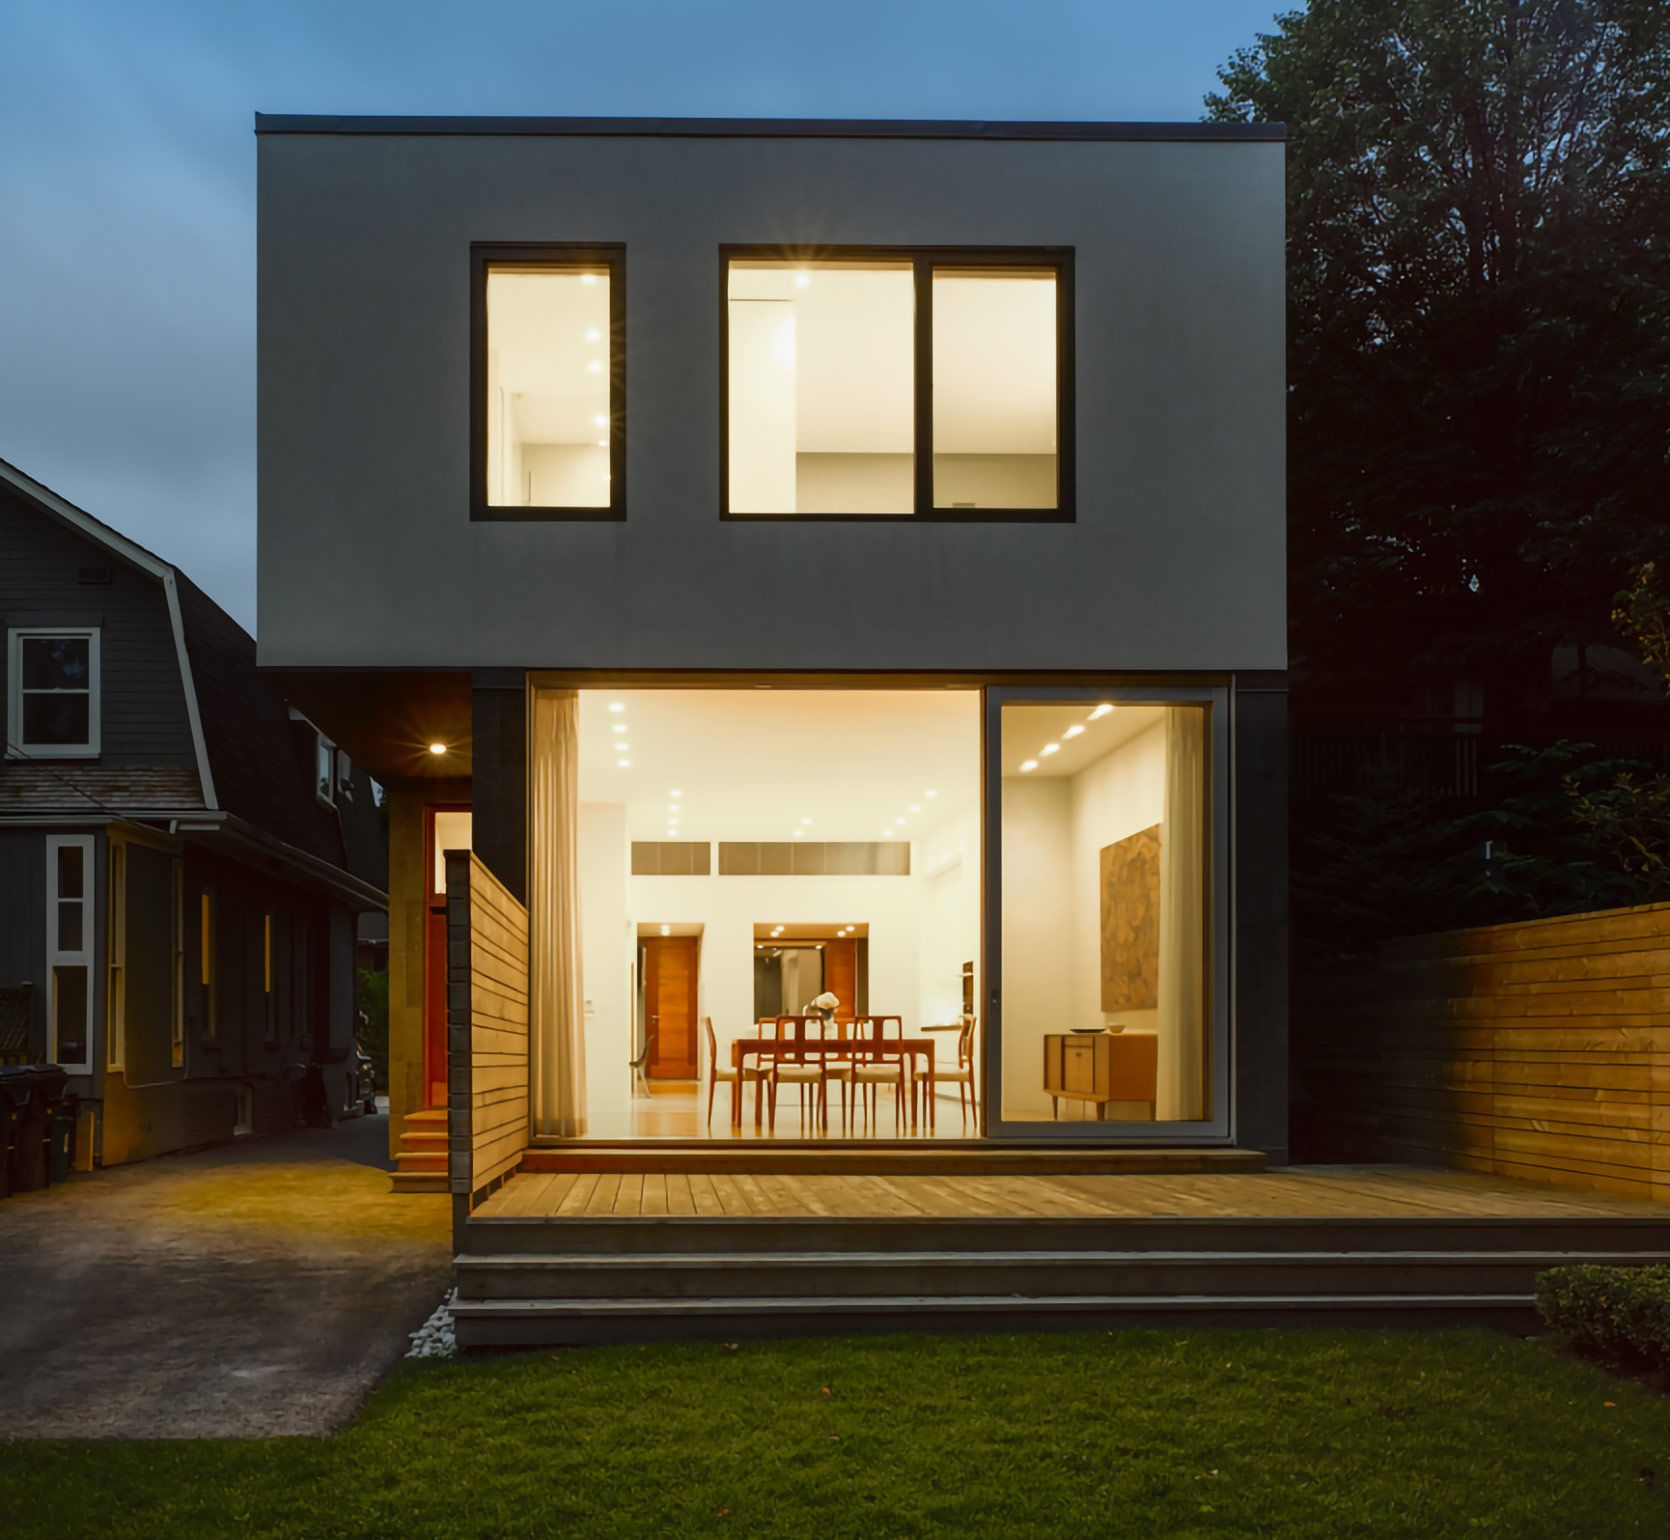 counterpoint-house-exterior-night-backyard-window-lit-house